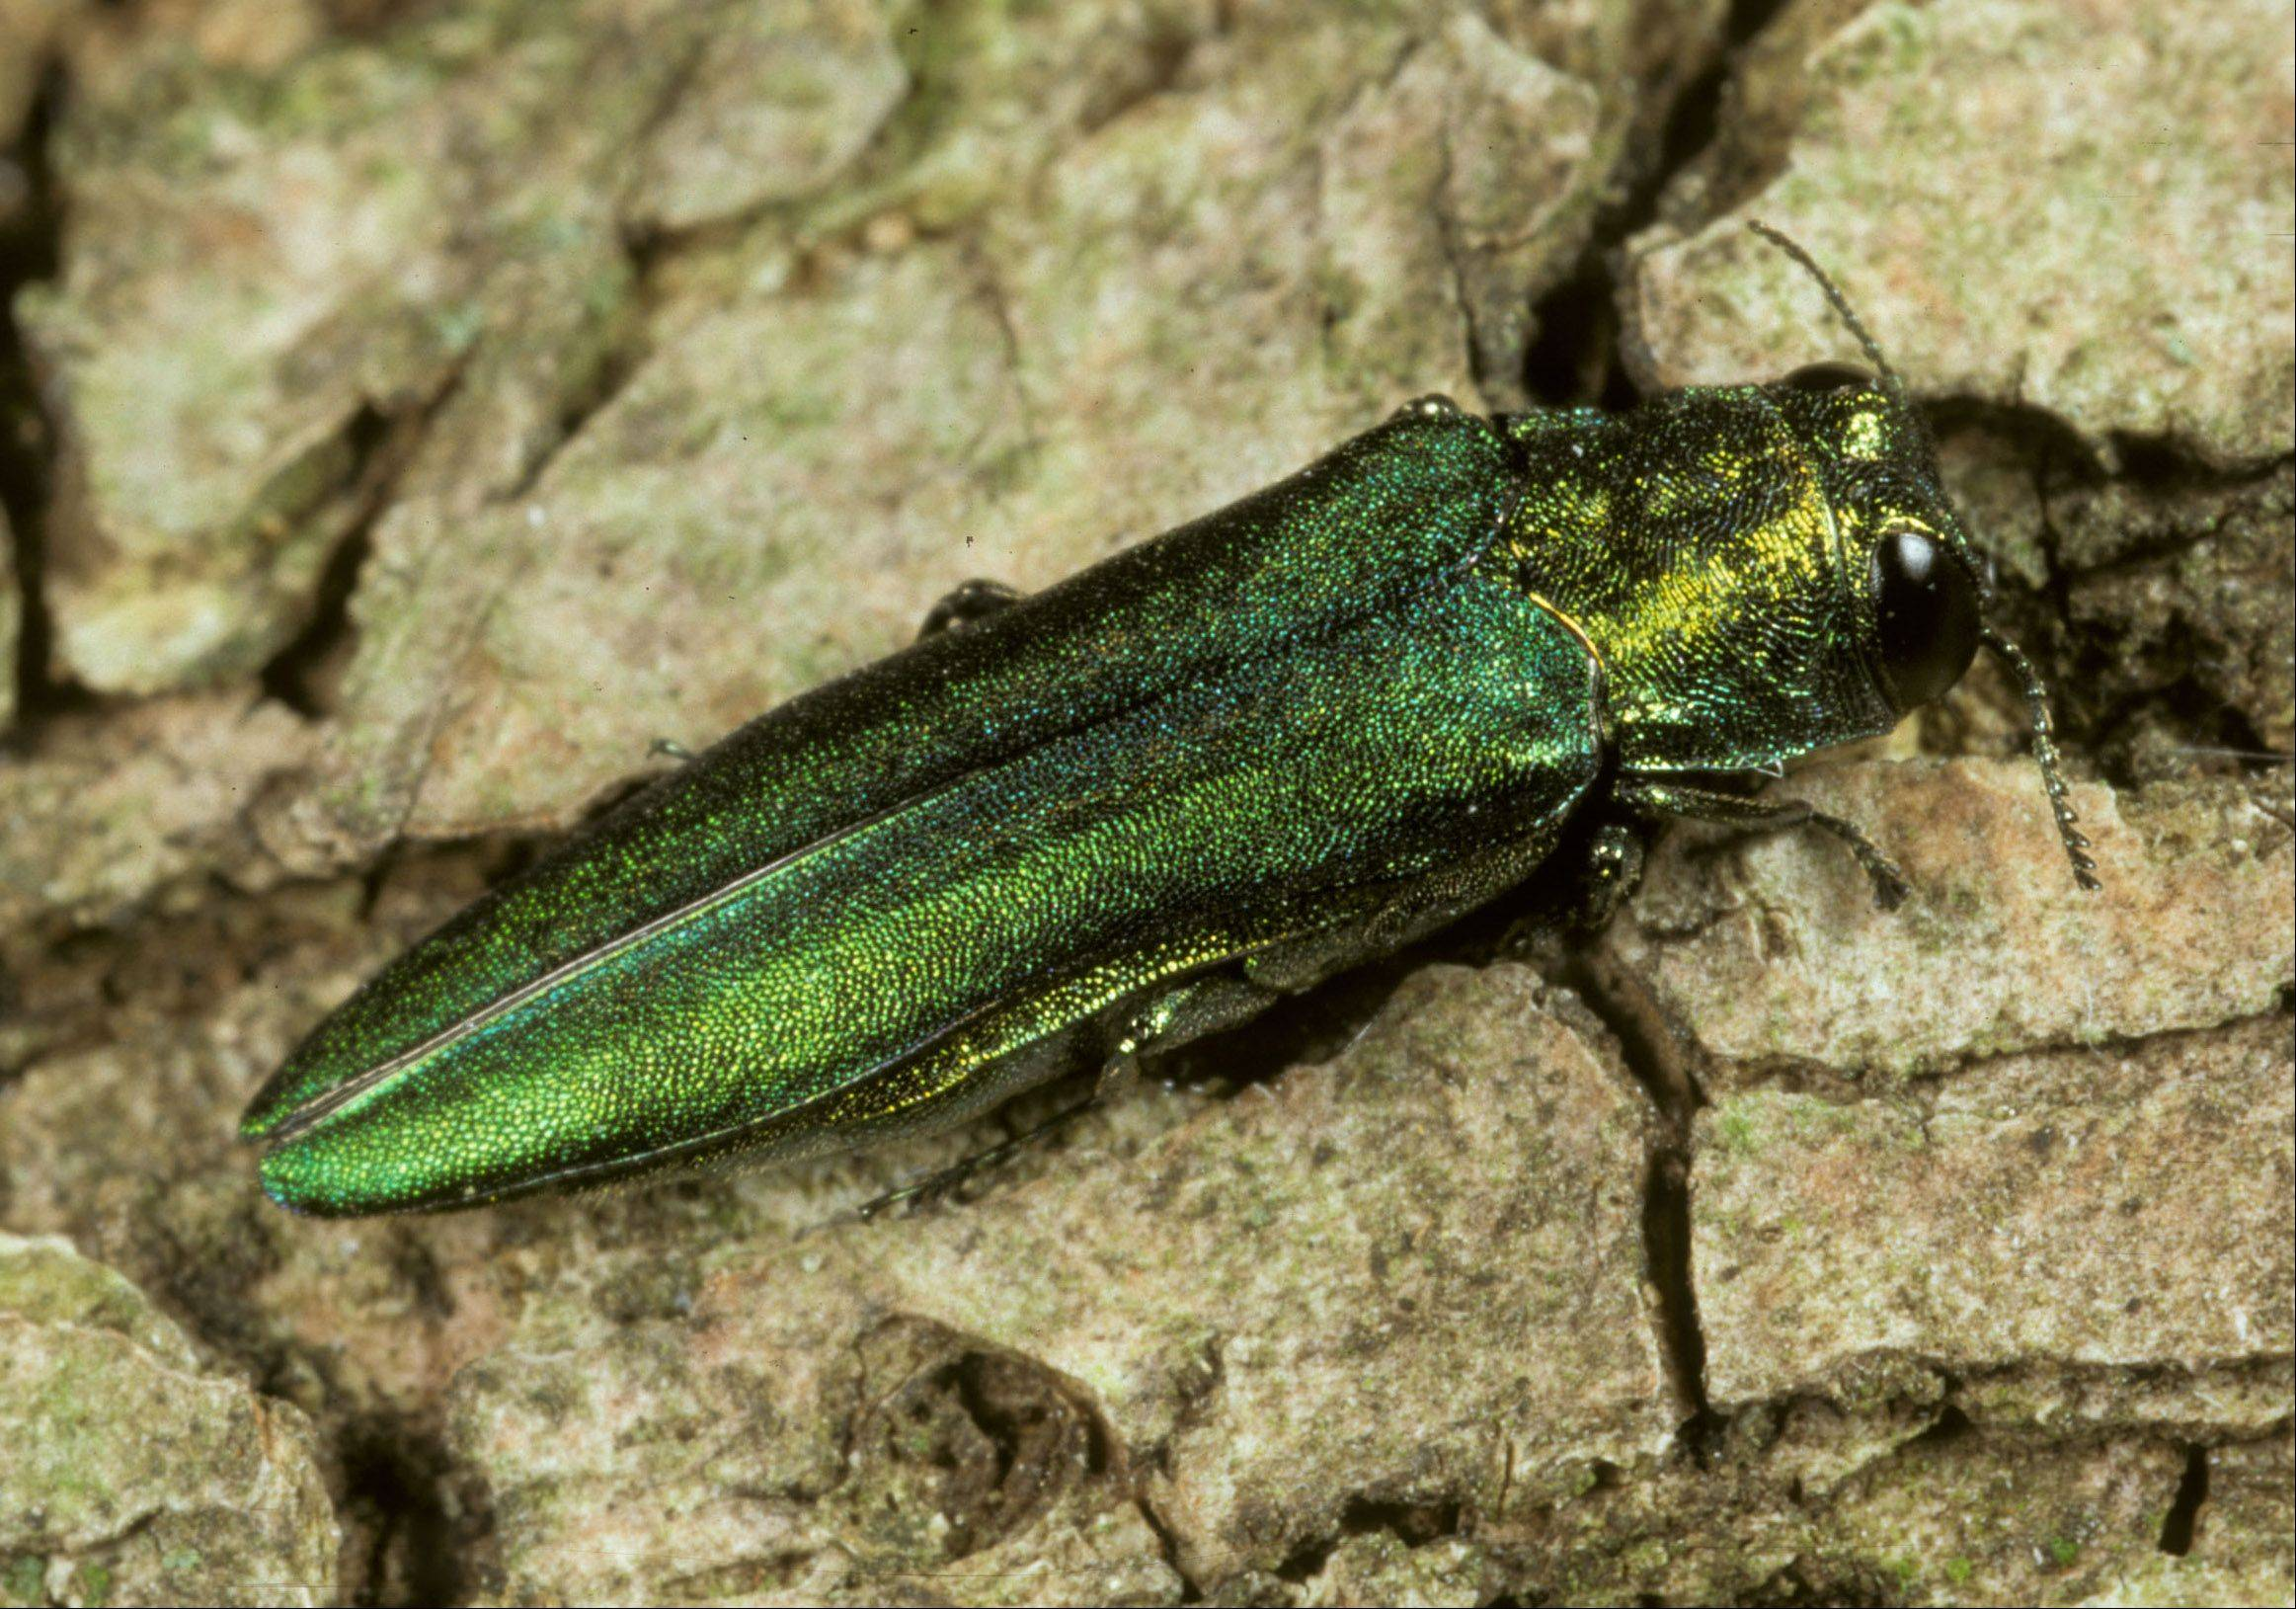 Up close with the emerald ash borer.